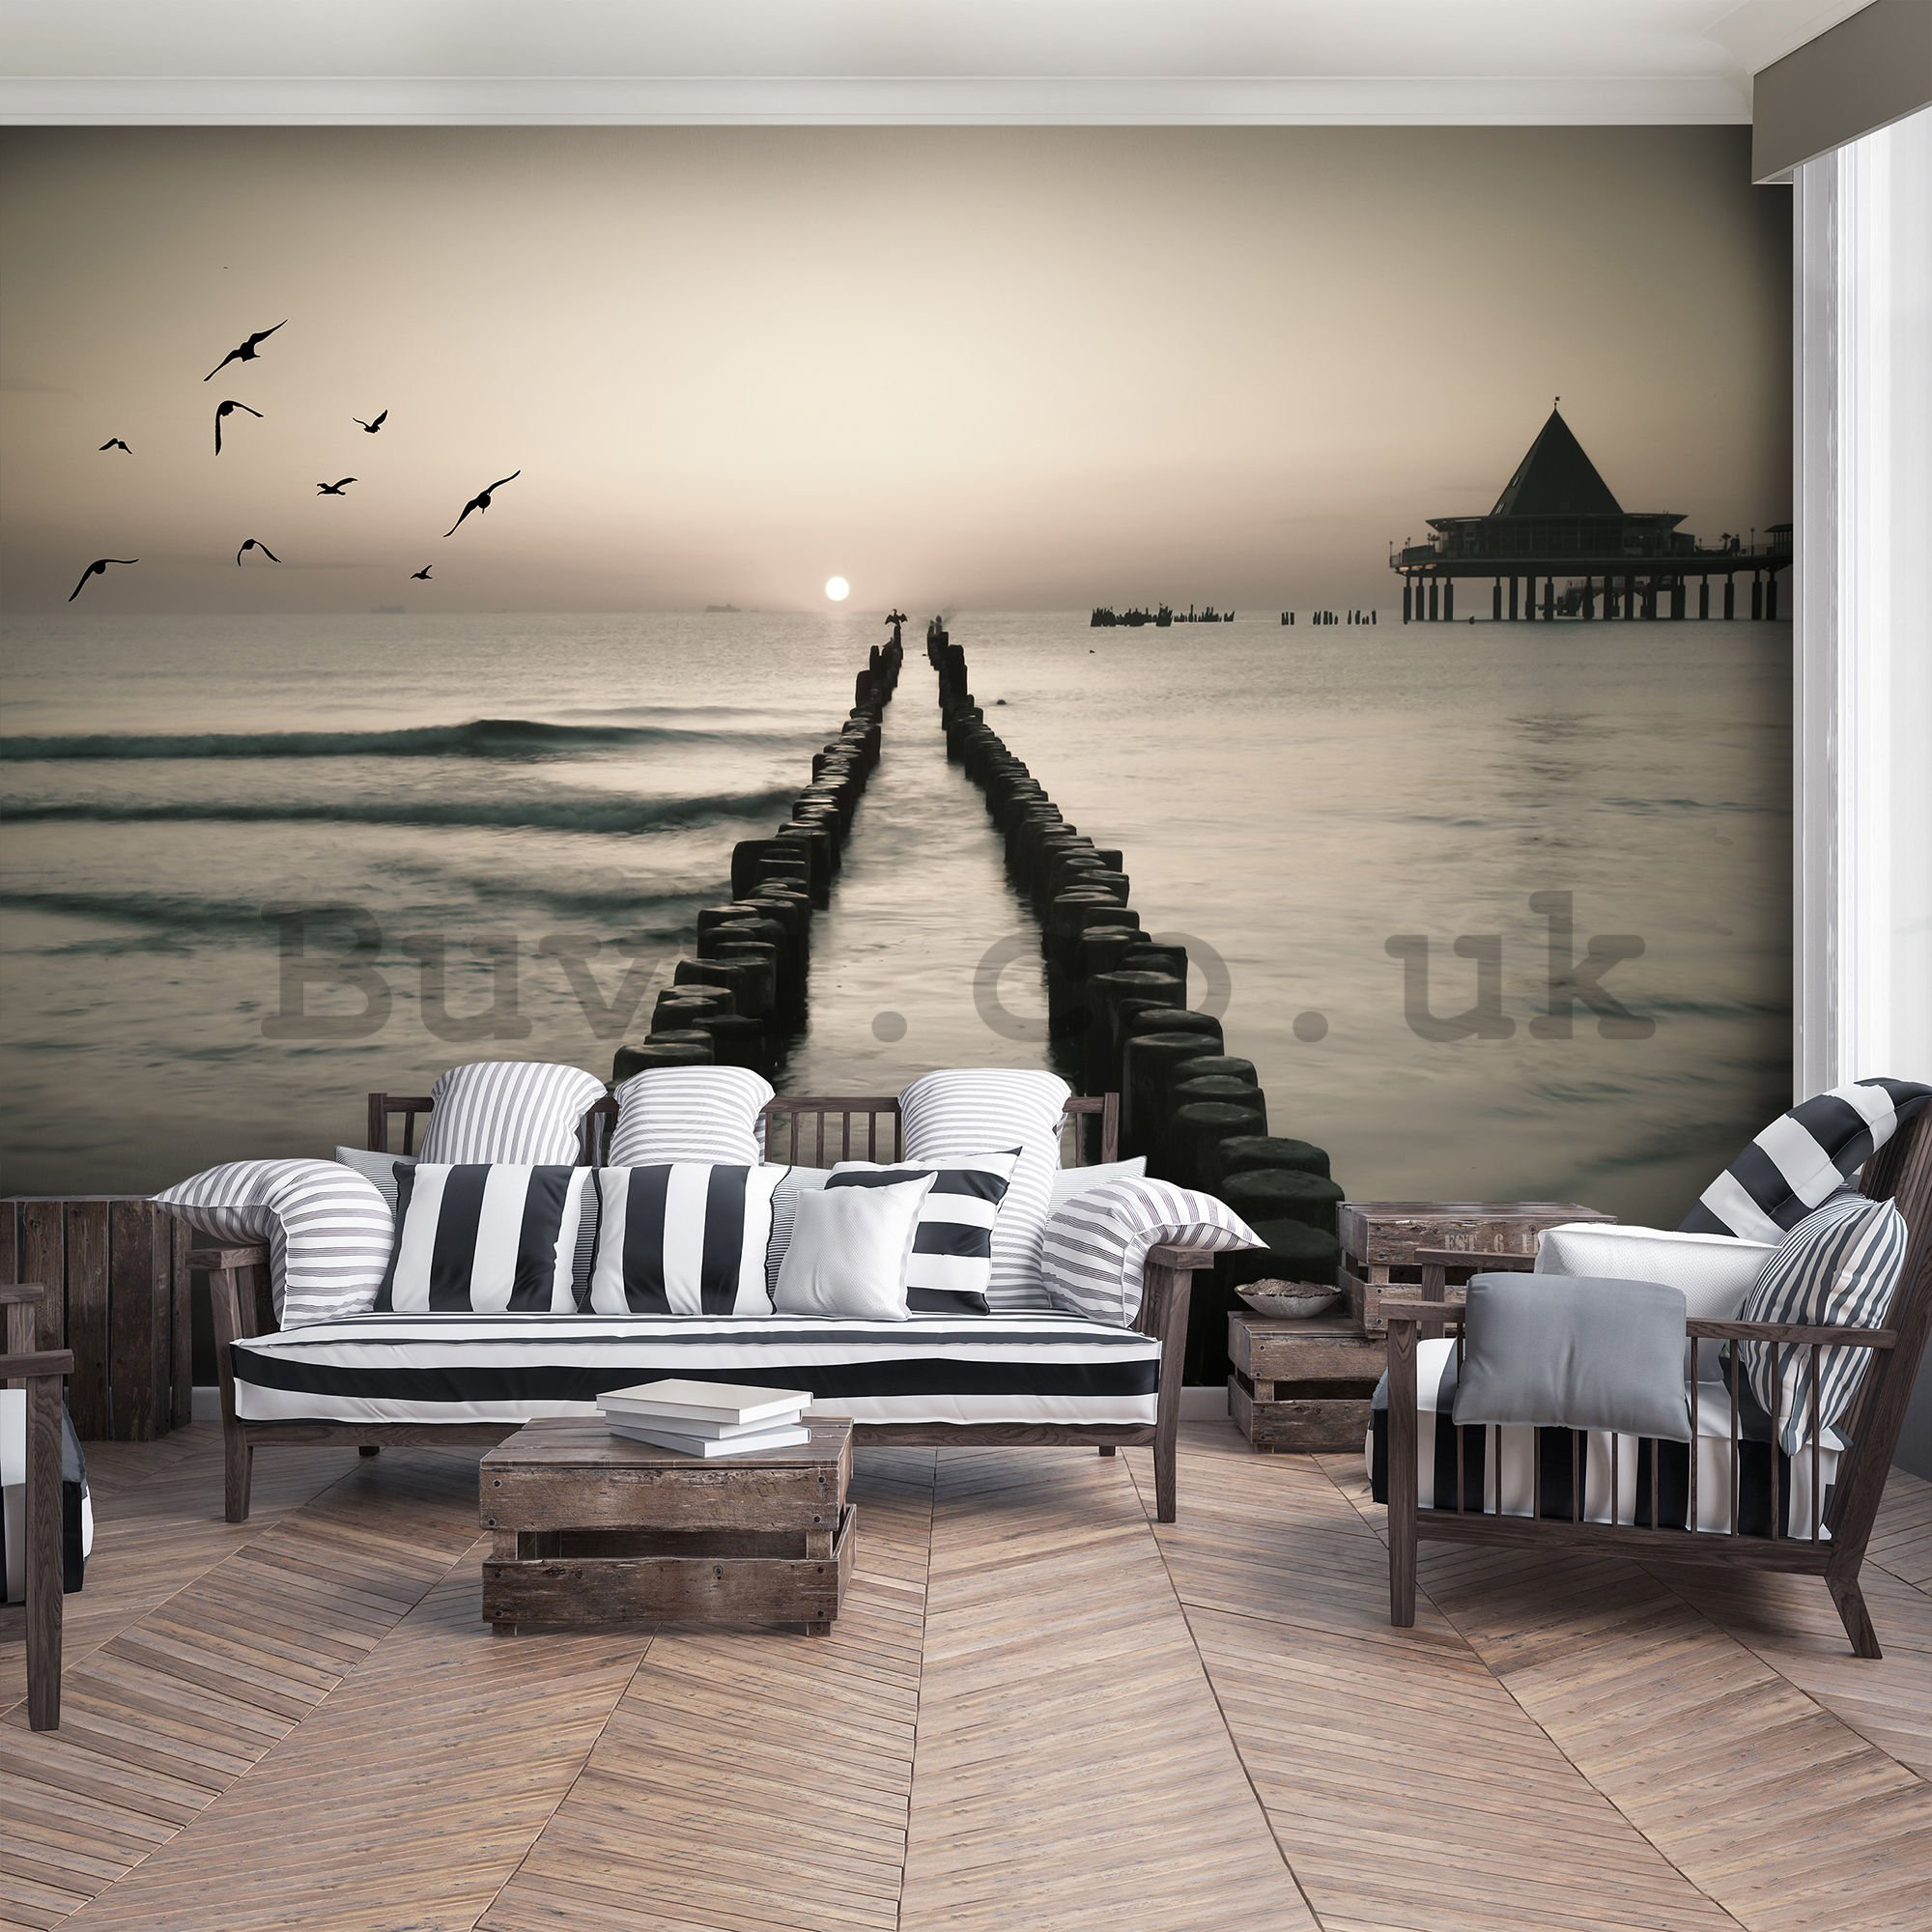 Wall mural: Journey through the sea - 254x368 cm